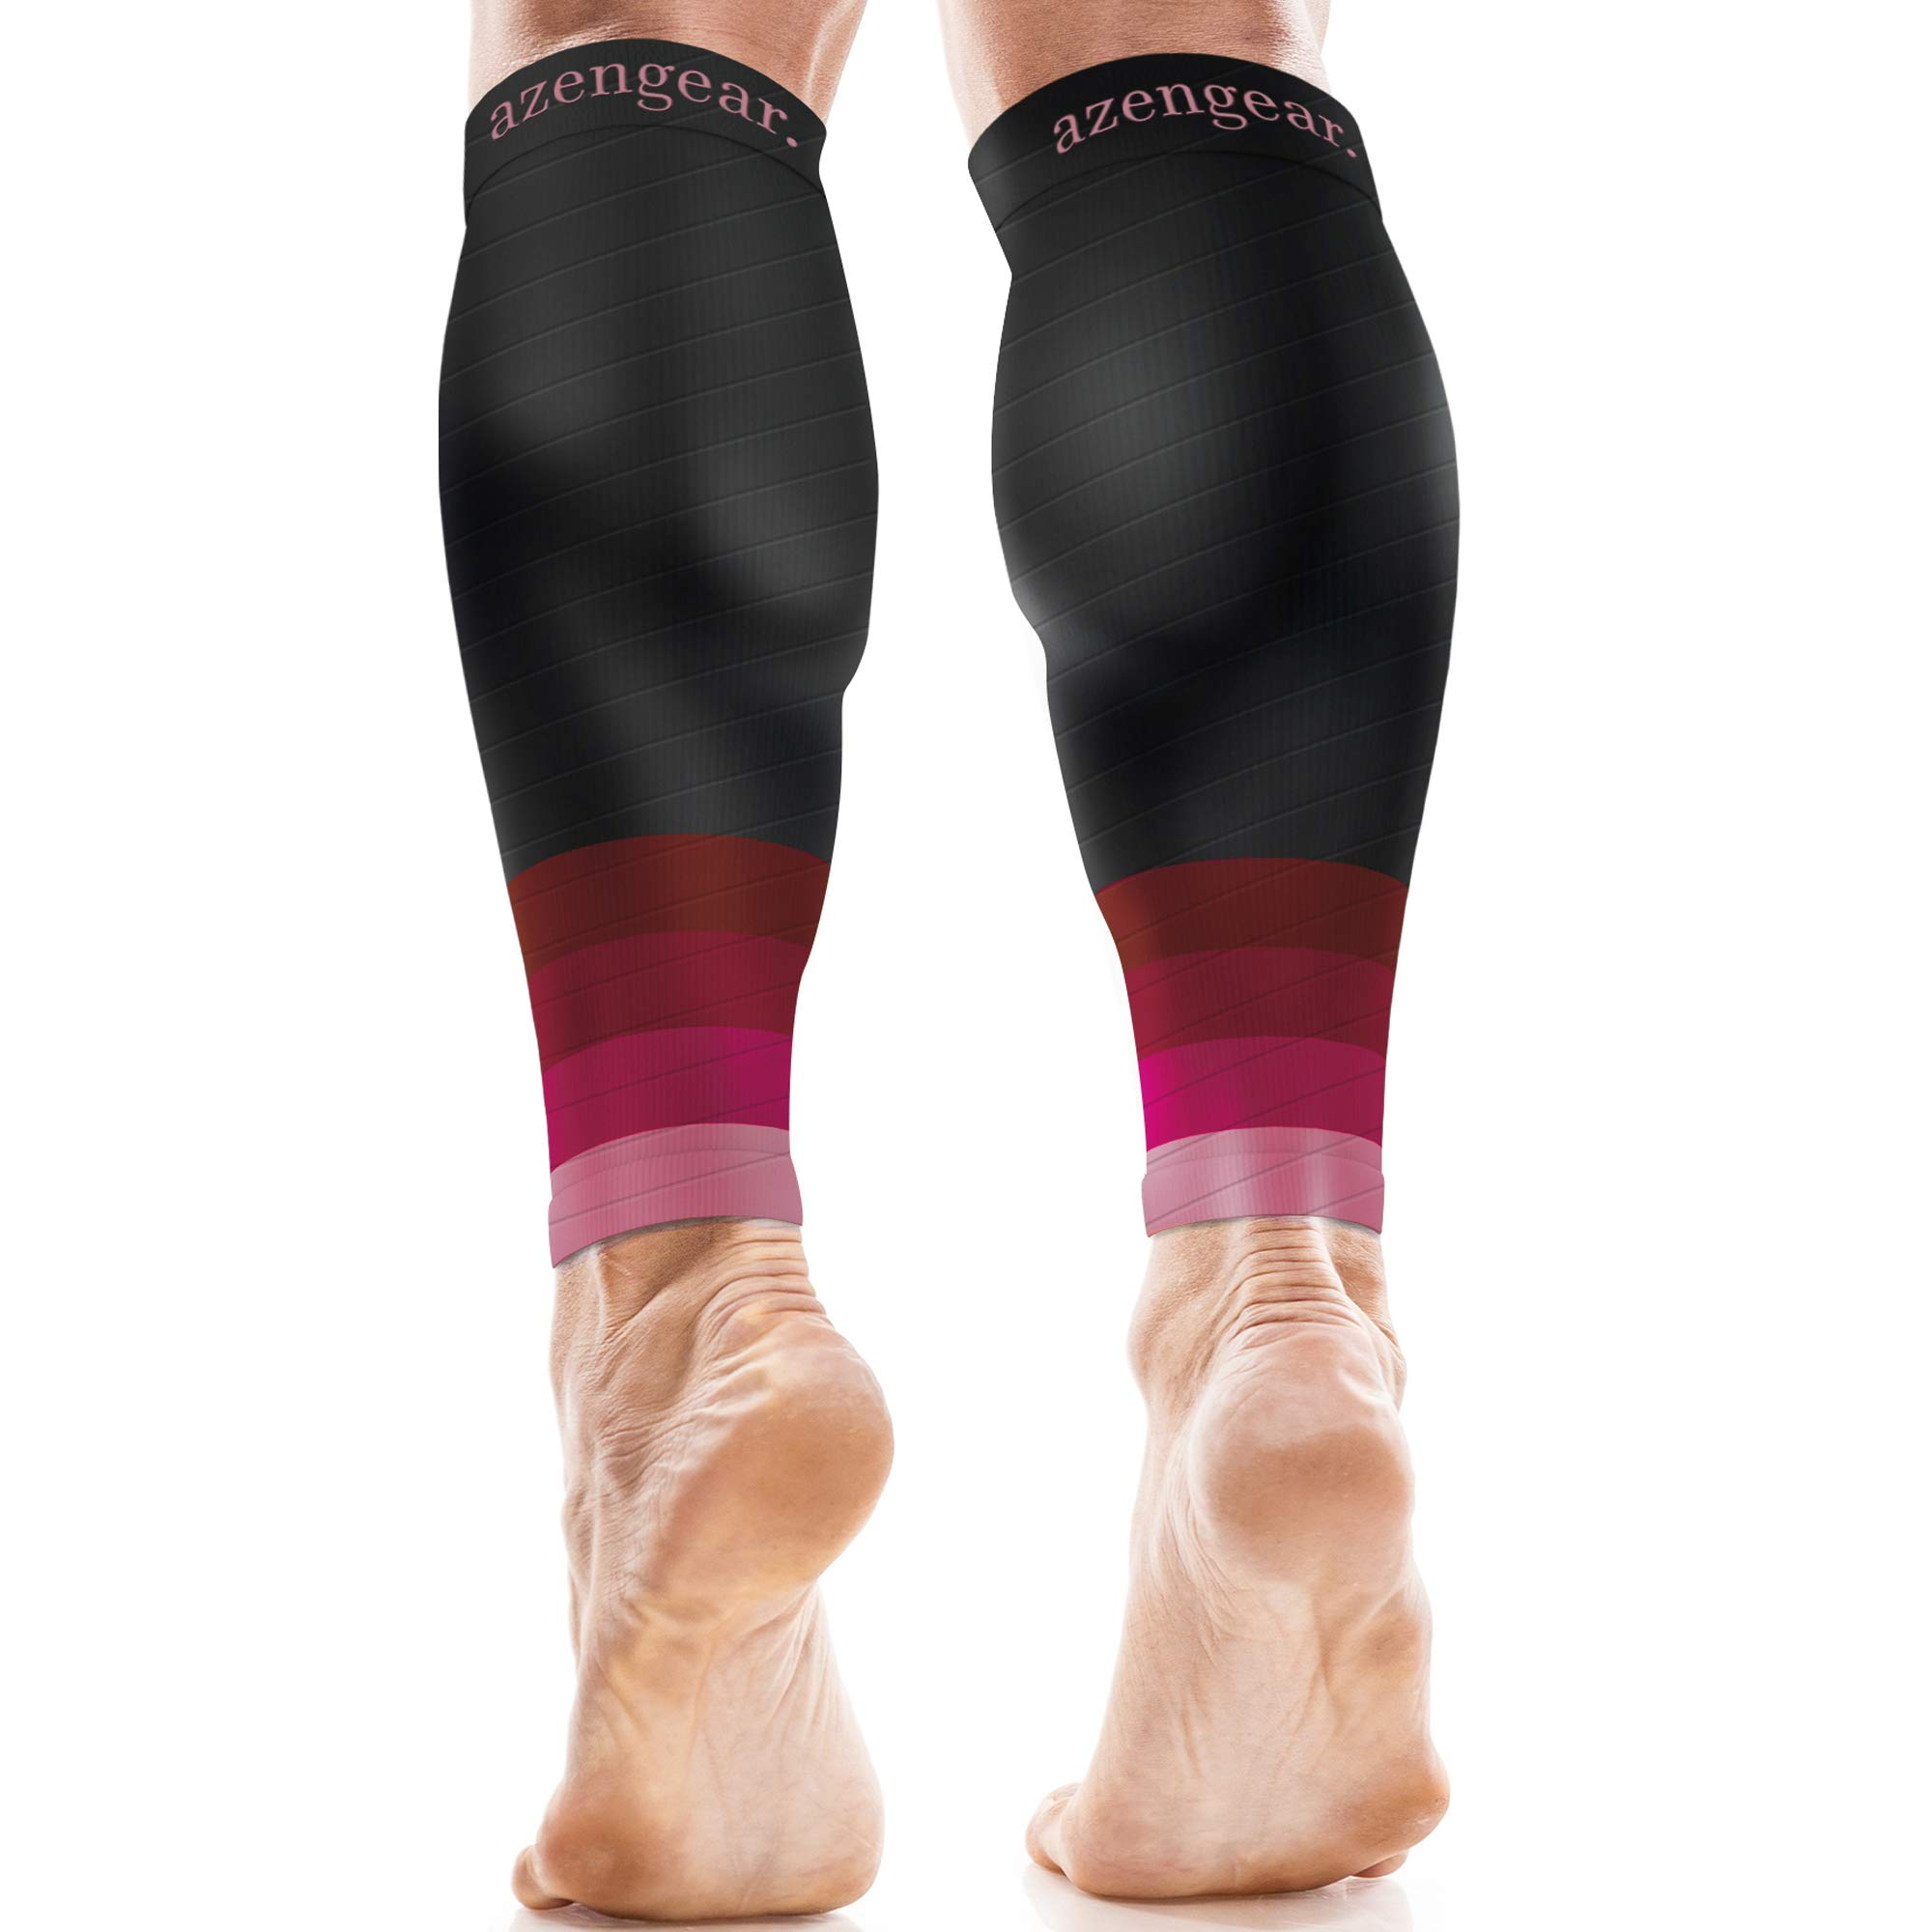 Good for DVT Recovery Compression Calf Guards Sleeves Men /& Women 20-30mmhg